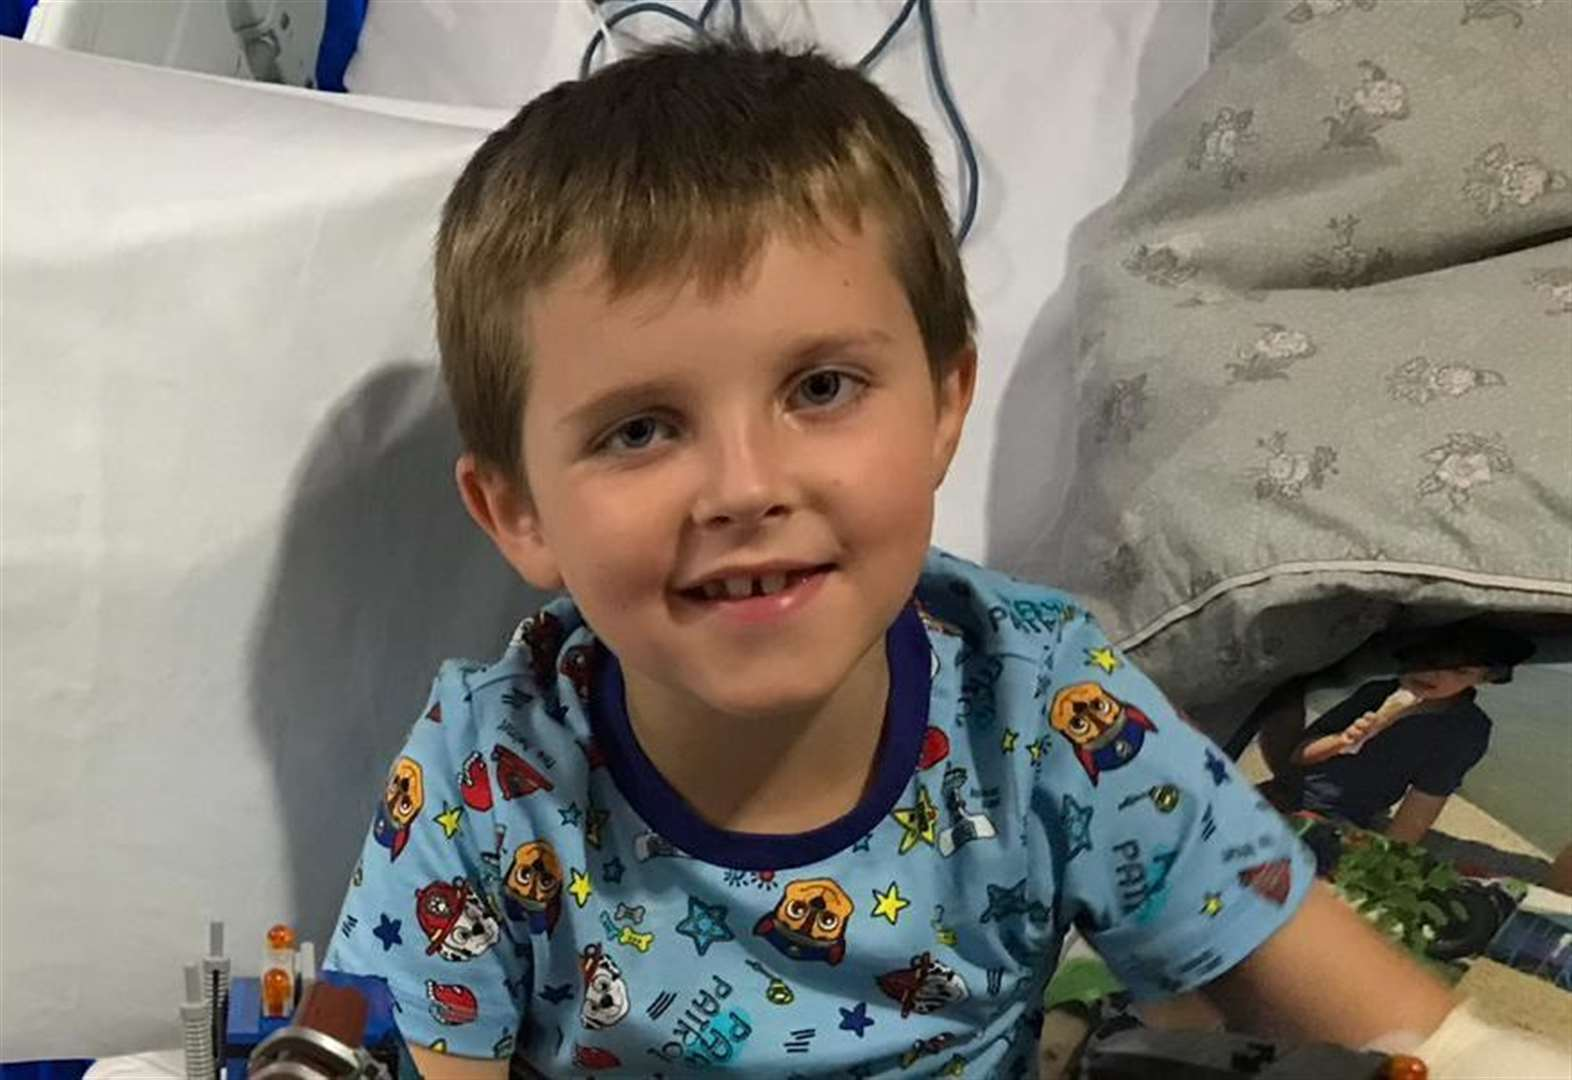 Family's grief as boy, 6, dies just weeks after diagnosis